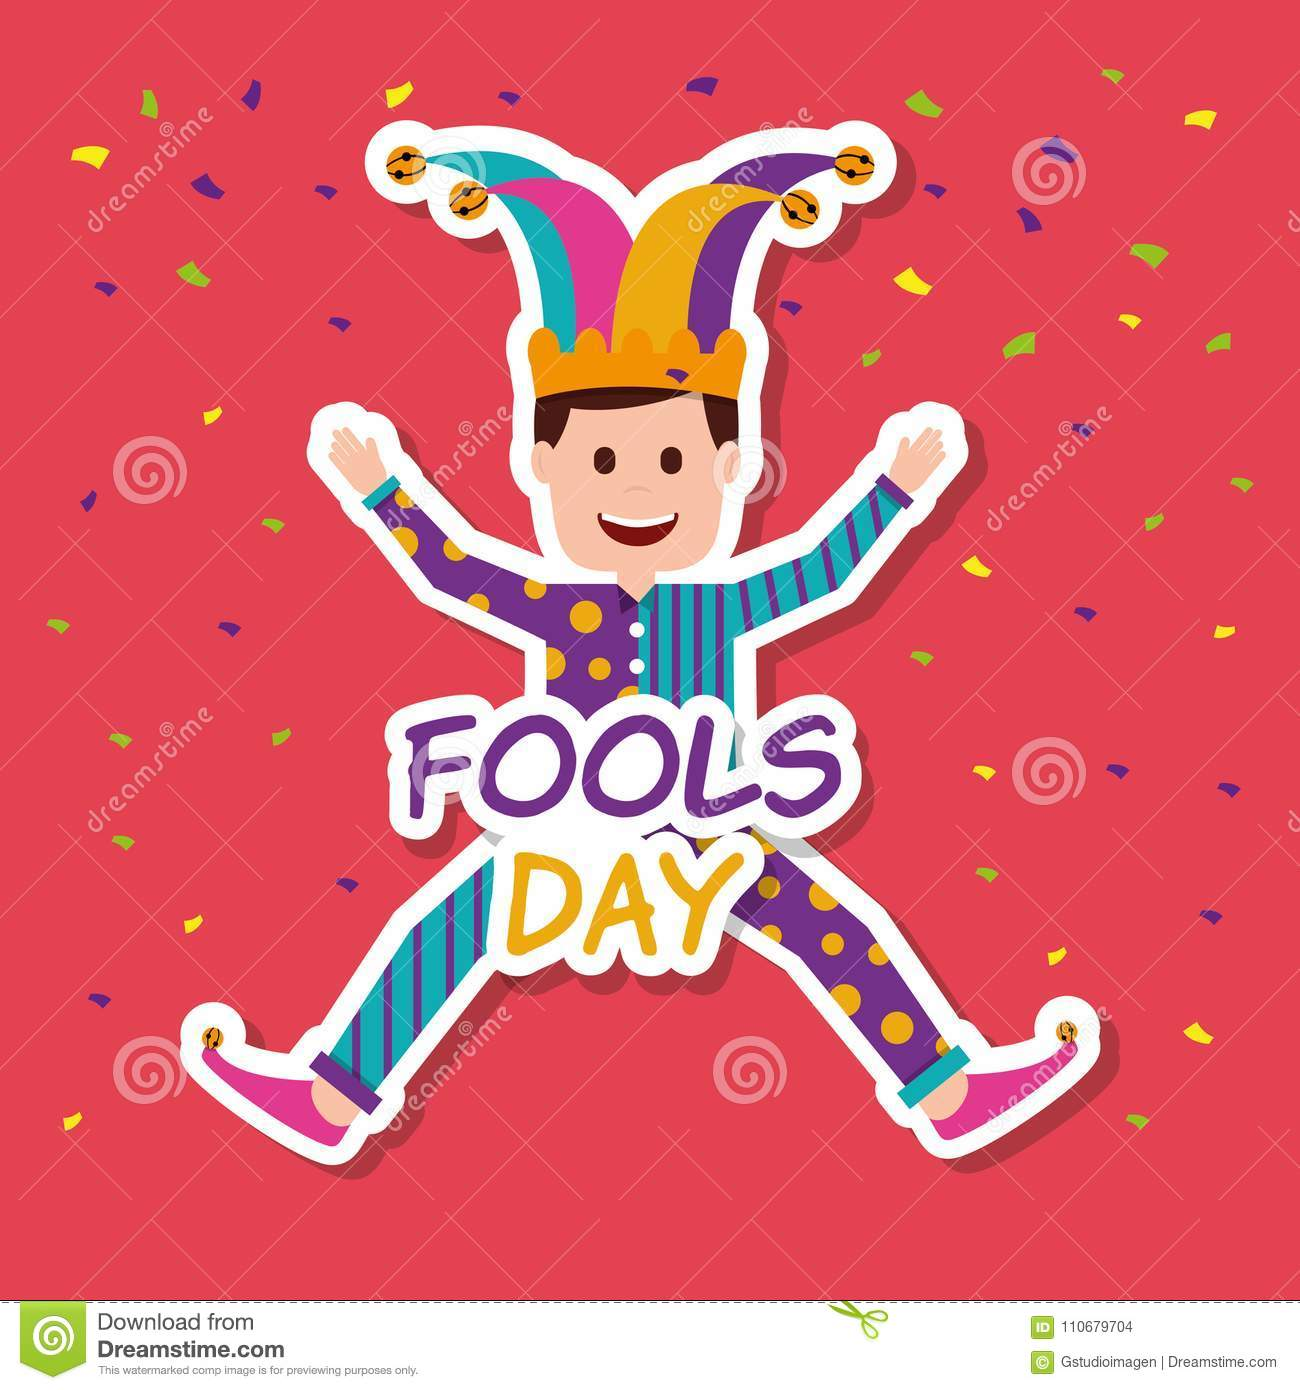 Fools Day Greeting Card Stock Vector Illustration Of Clipart